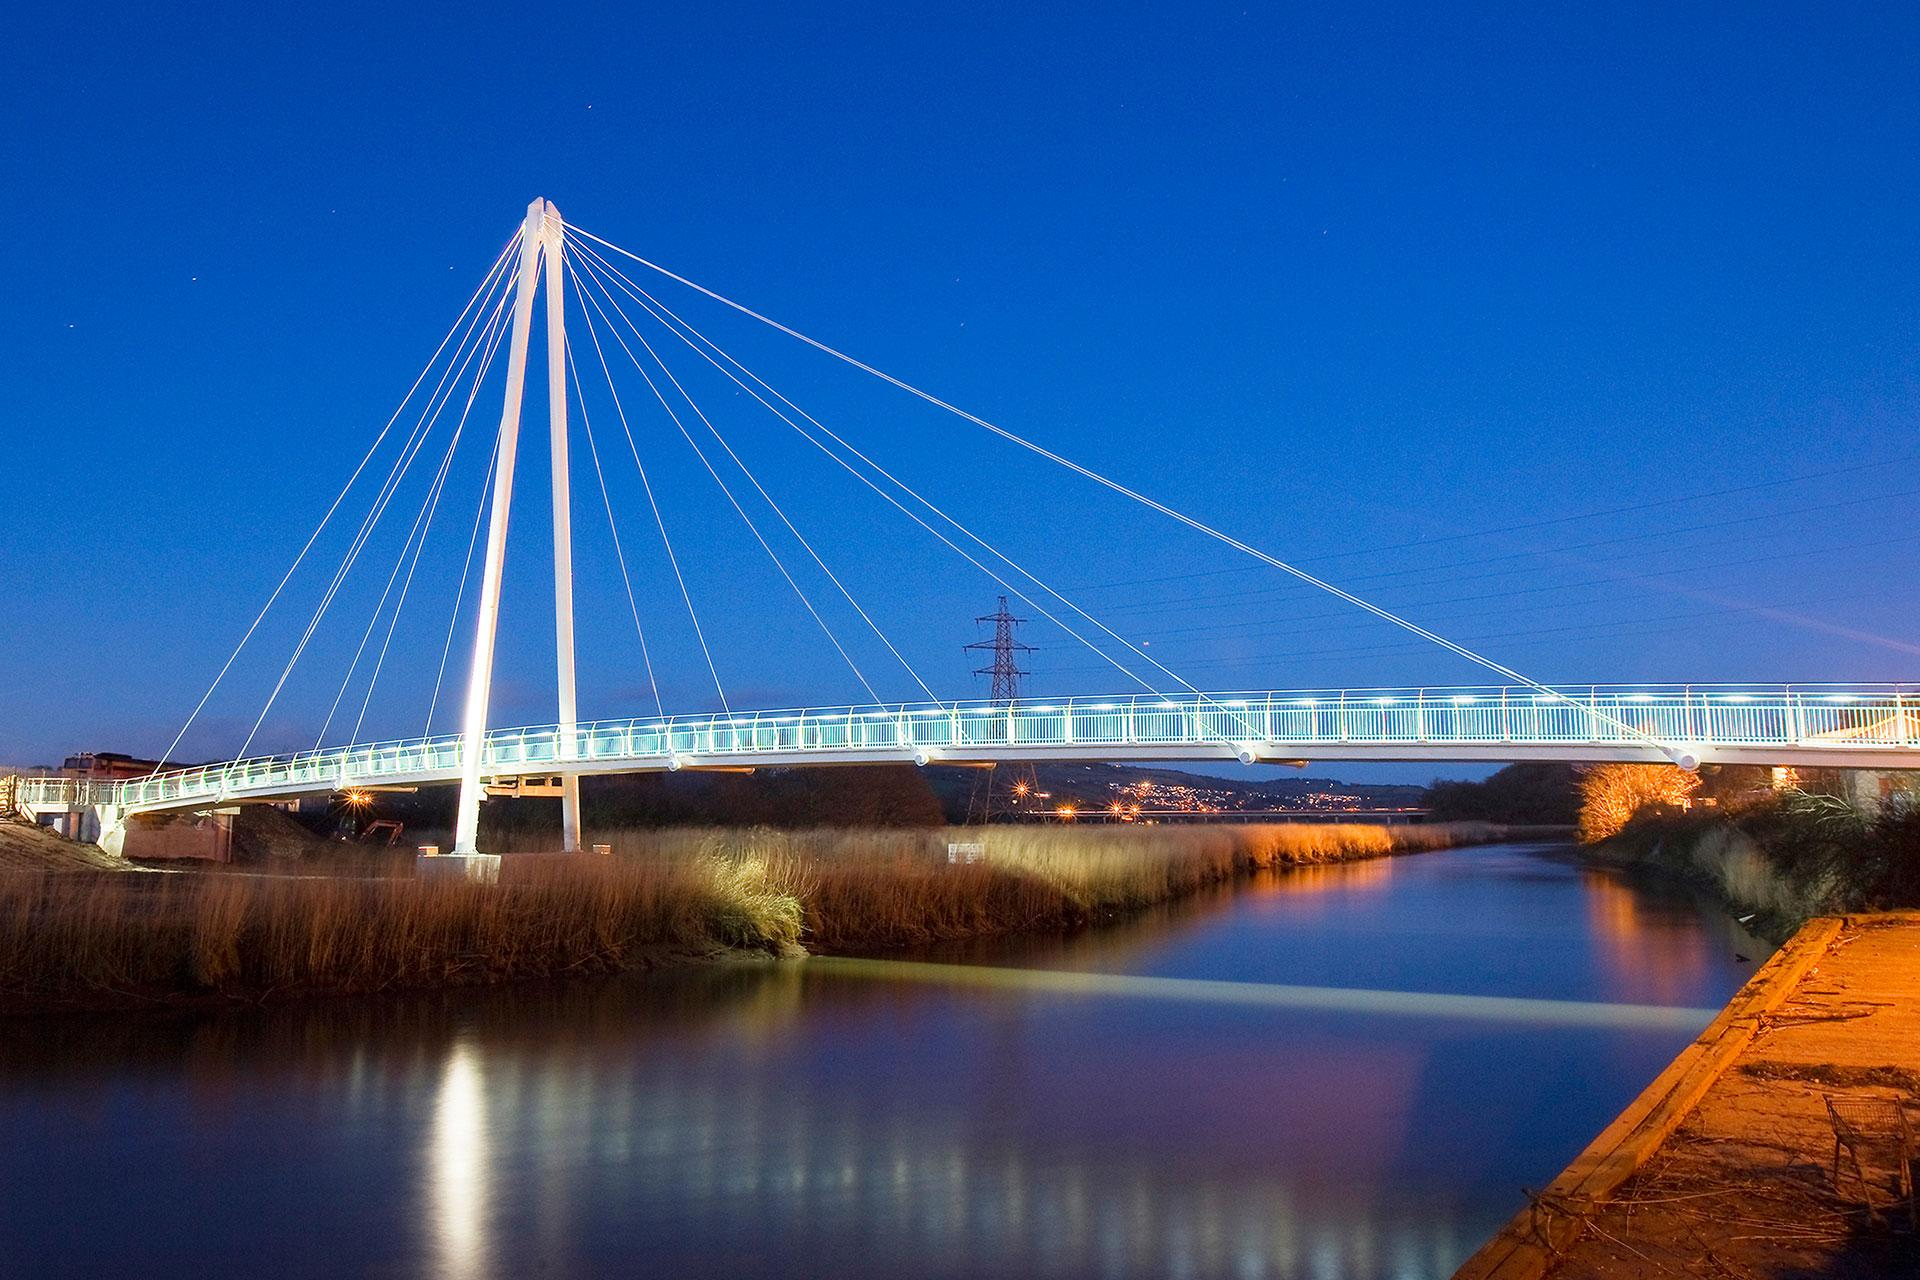 Schréder provides ecological lighting solution for Town Quay Bridge to preserve bats